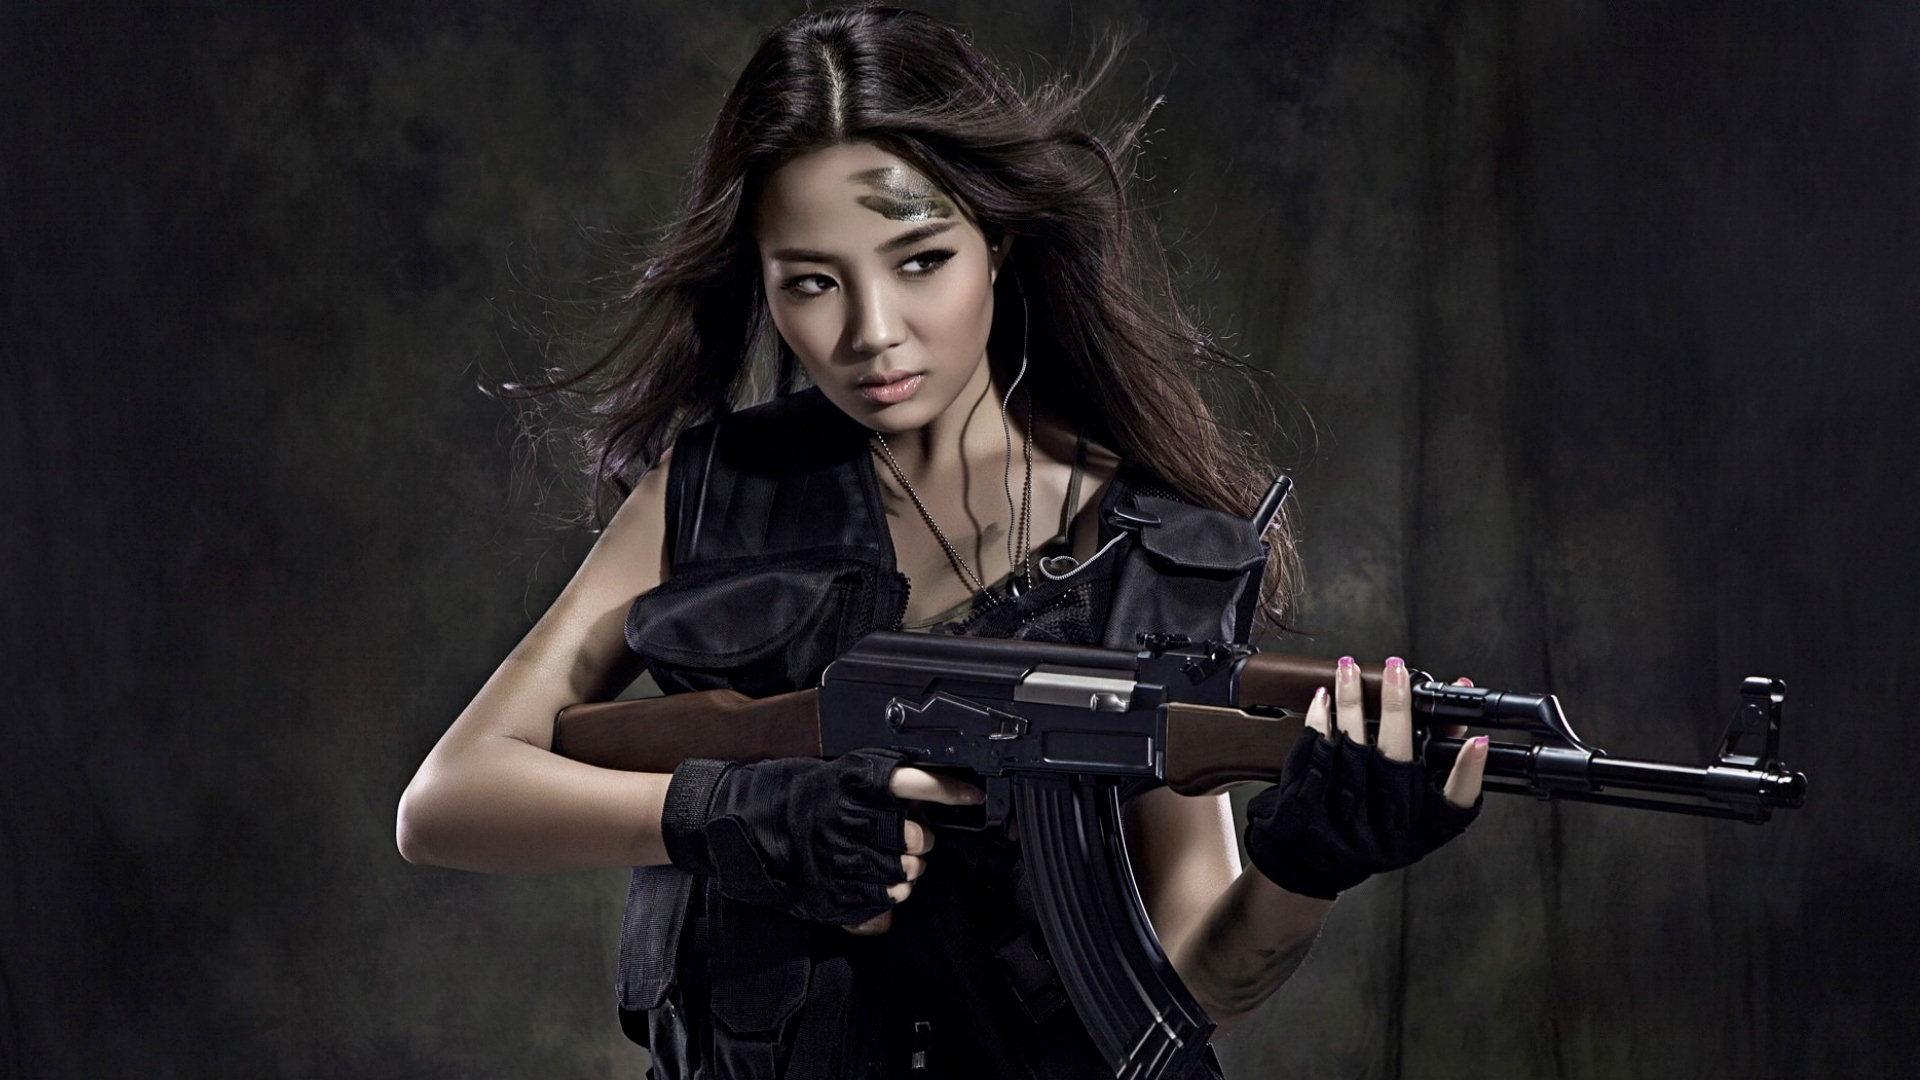 97 girls & guns hd wallpapers | background images - wallpaper abyss